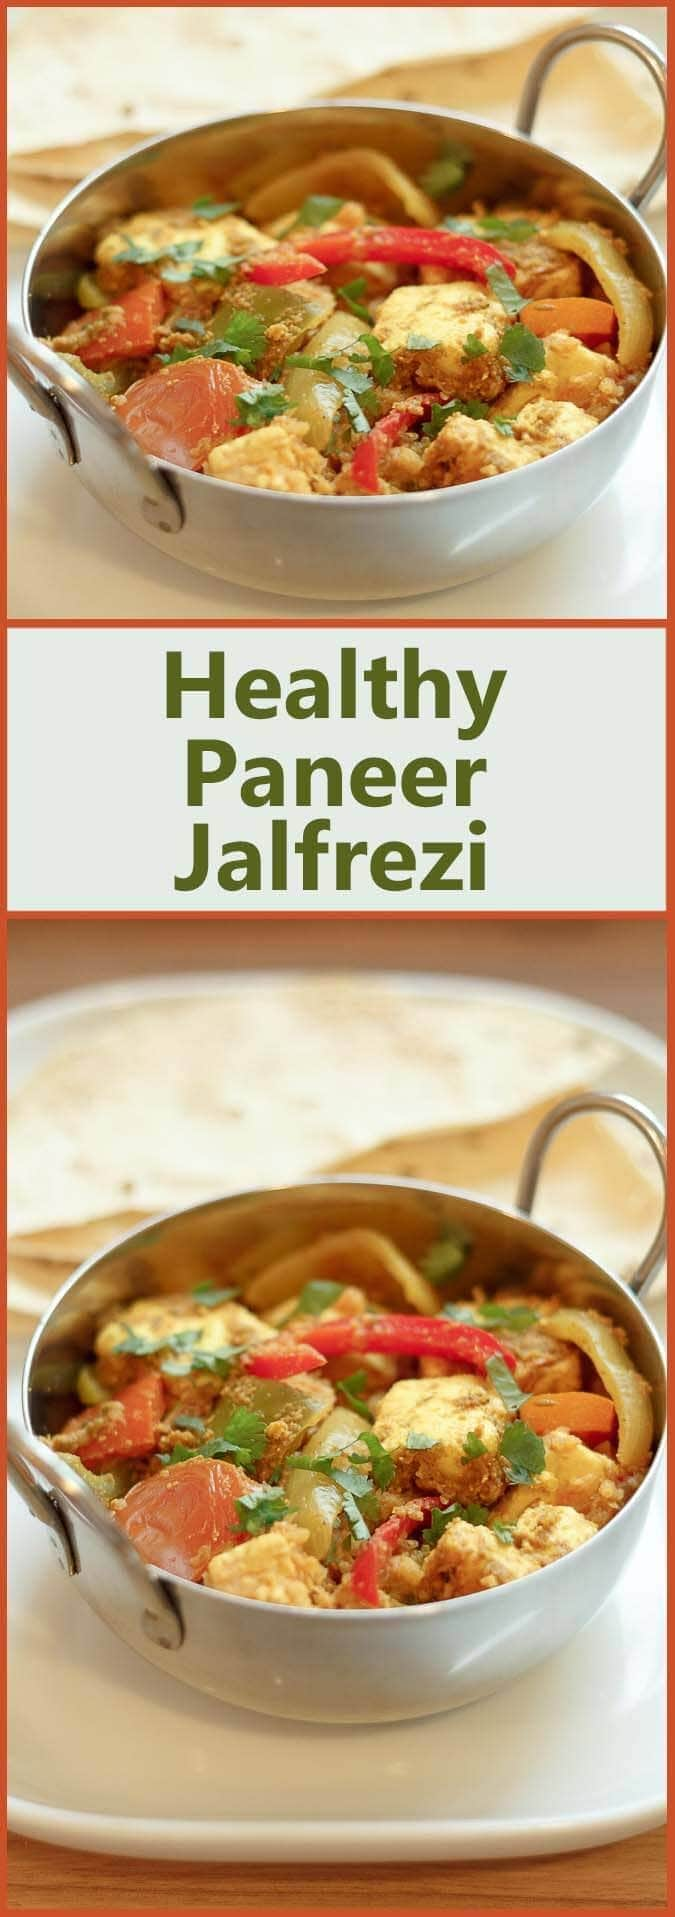 Here's the classic Indian jalfrezi curry, made into a healthy paneer jalfrezi. By using paneer cheese its completely suitable for vegetarians too!